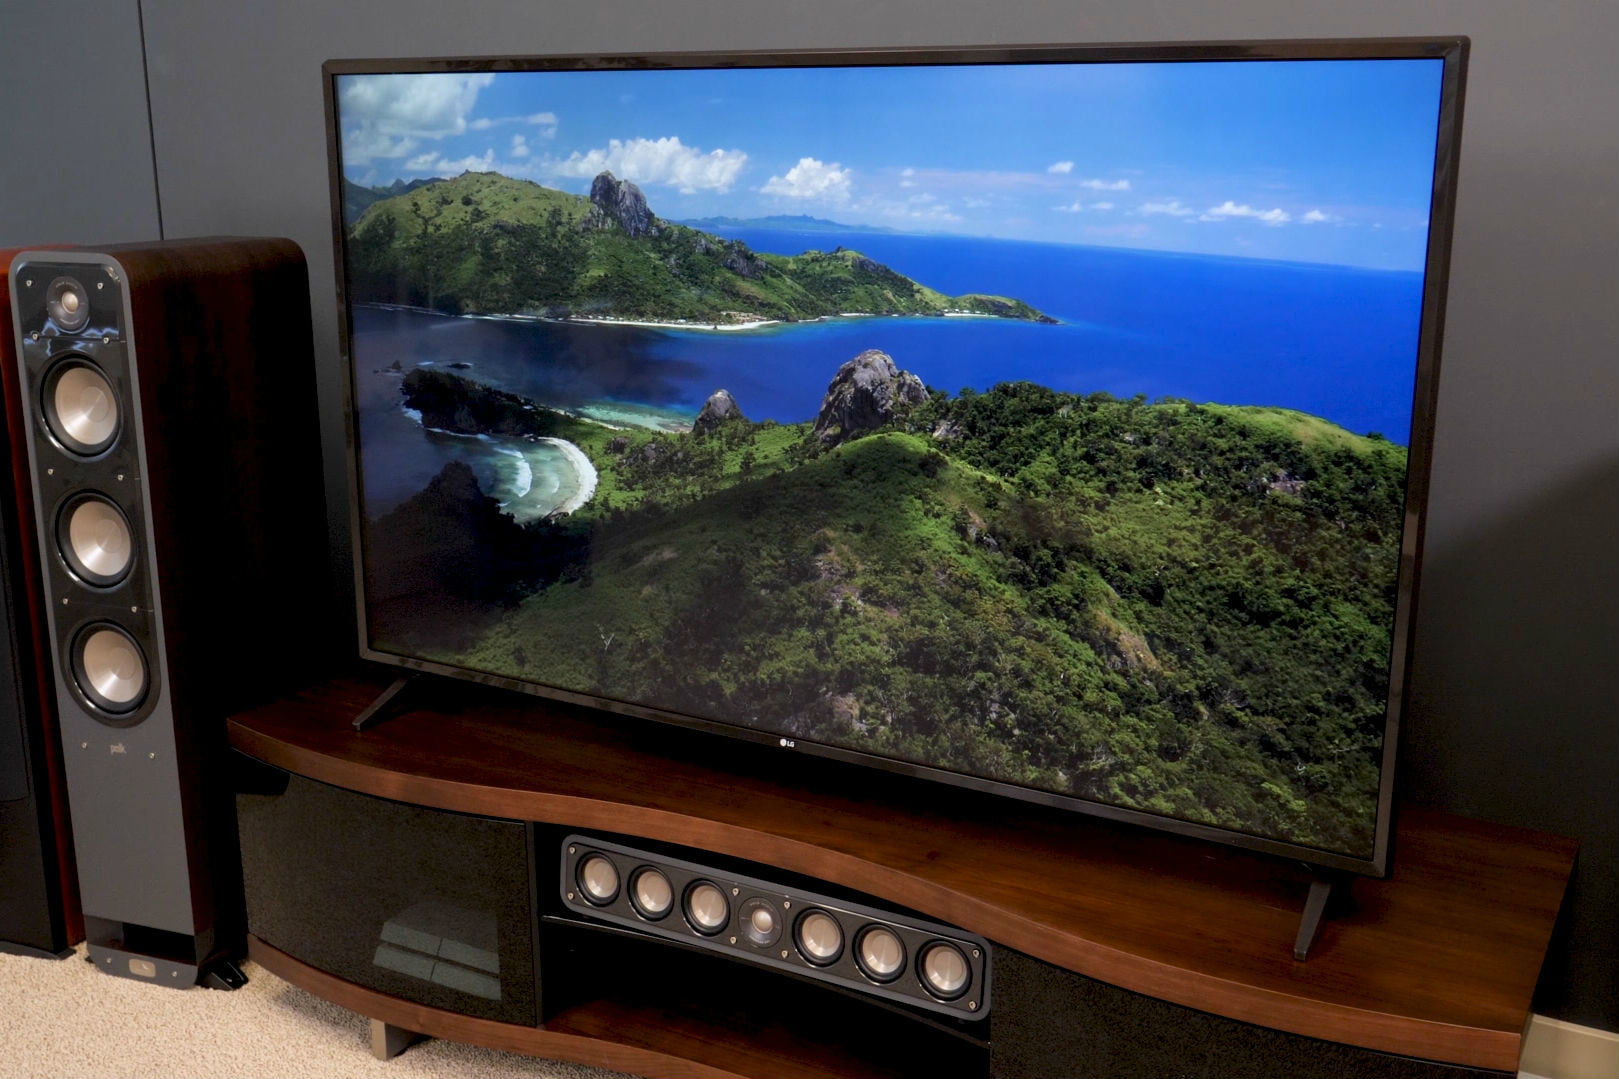 Get Set for 4K With Our LG UJ6300 TV Unboxing and Setup